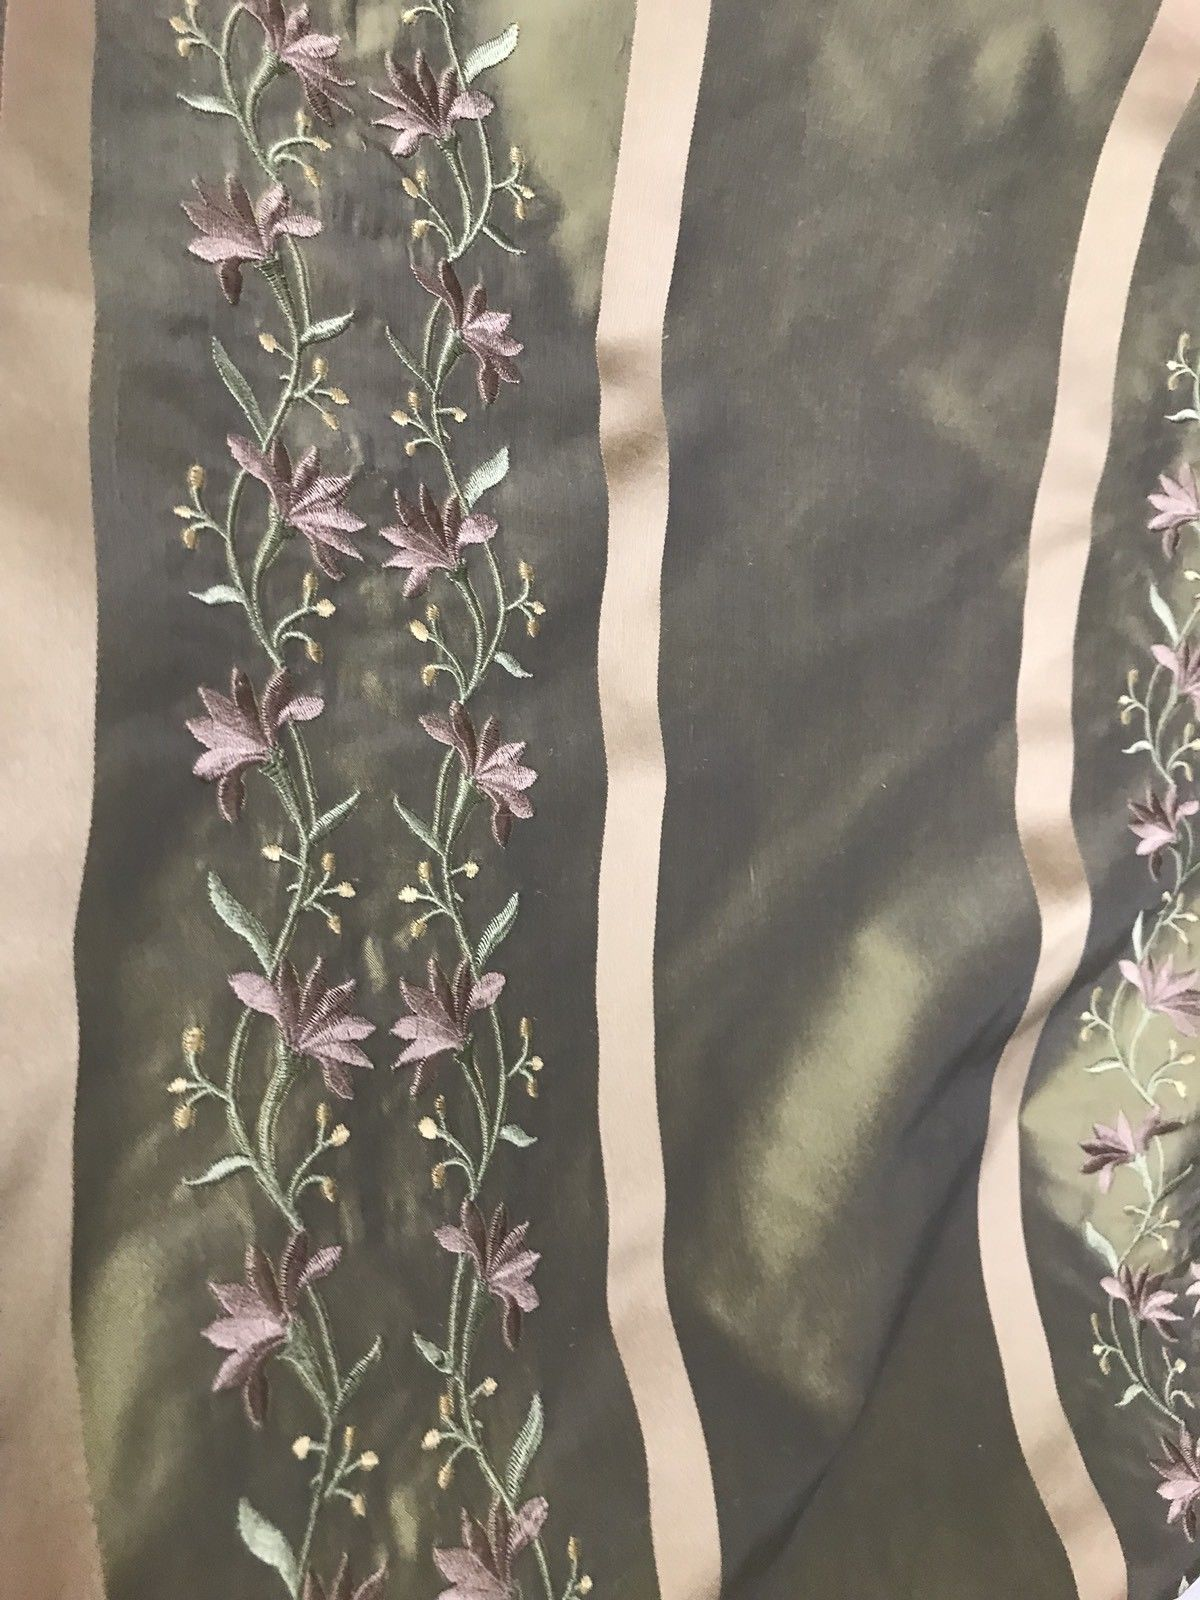 NEW! SALE! 100% Silk Taffeta Embroidered Fabric- Green With Lavender Floral - Fancy Styles Fabric Boutique